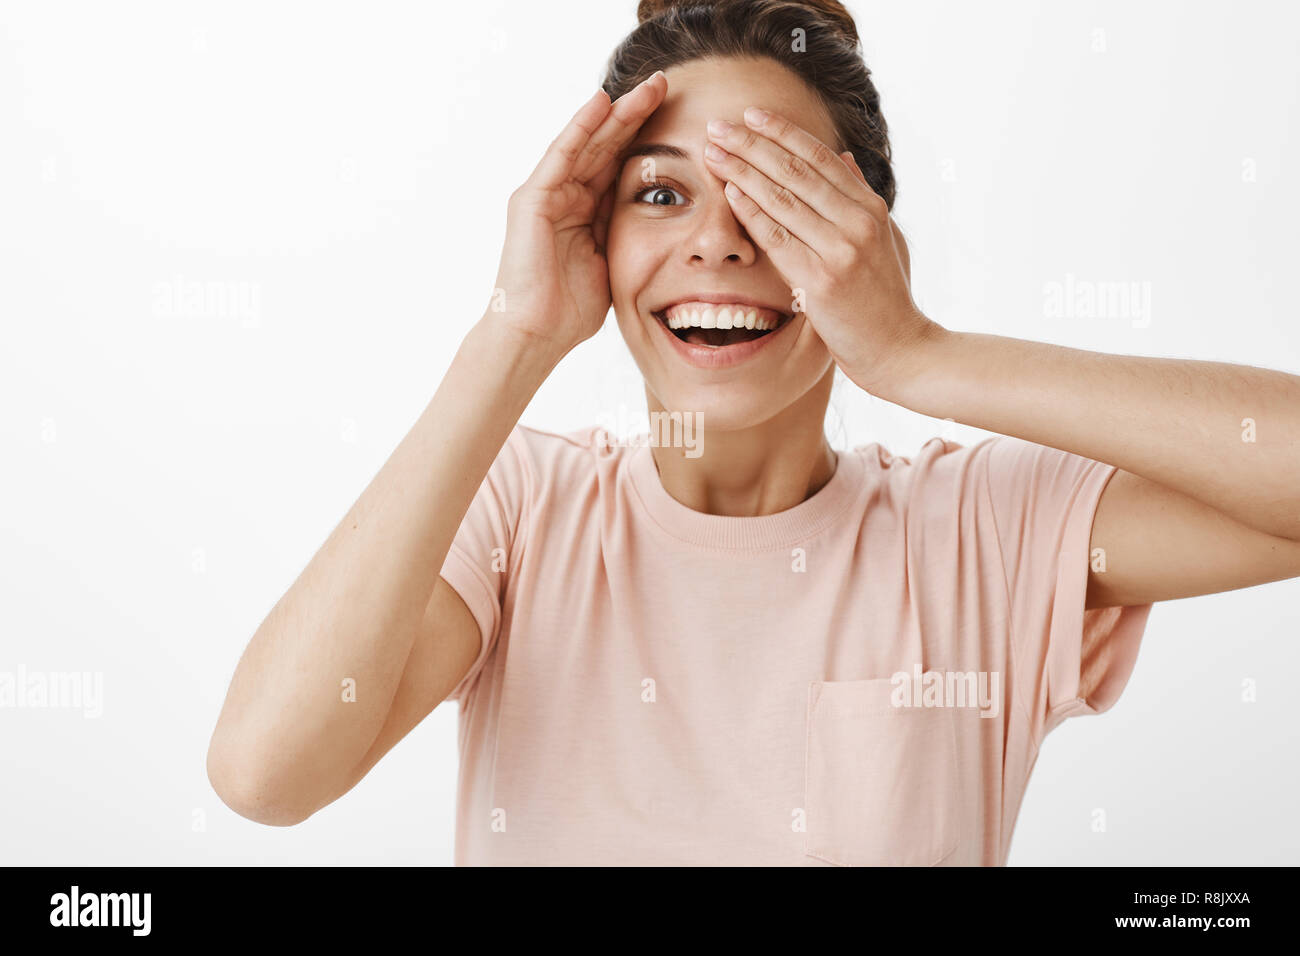 Studio shot of excited girl cheating and peeking through fingers as waiting for surprise being asked to close eyes smiling broadly with amused and joyful expression reacting to awesome present - Stock Image